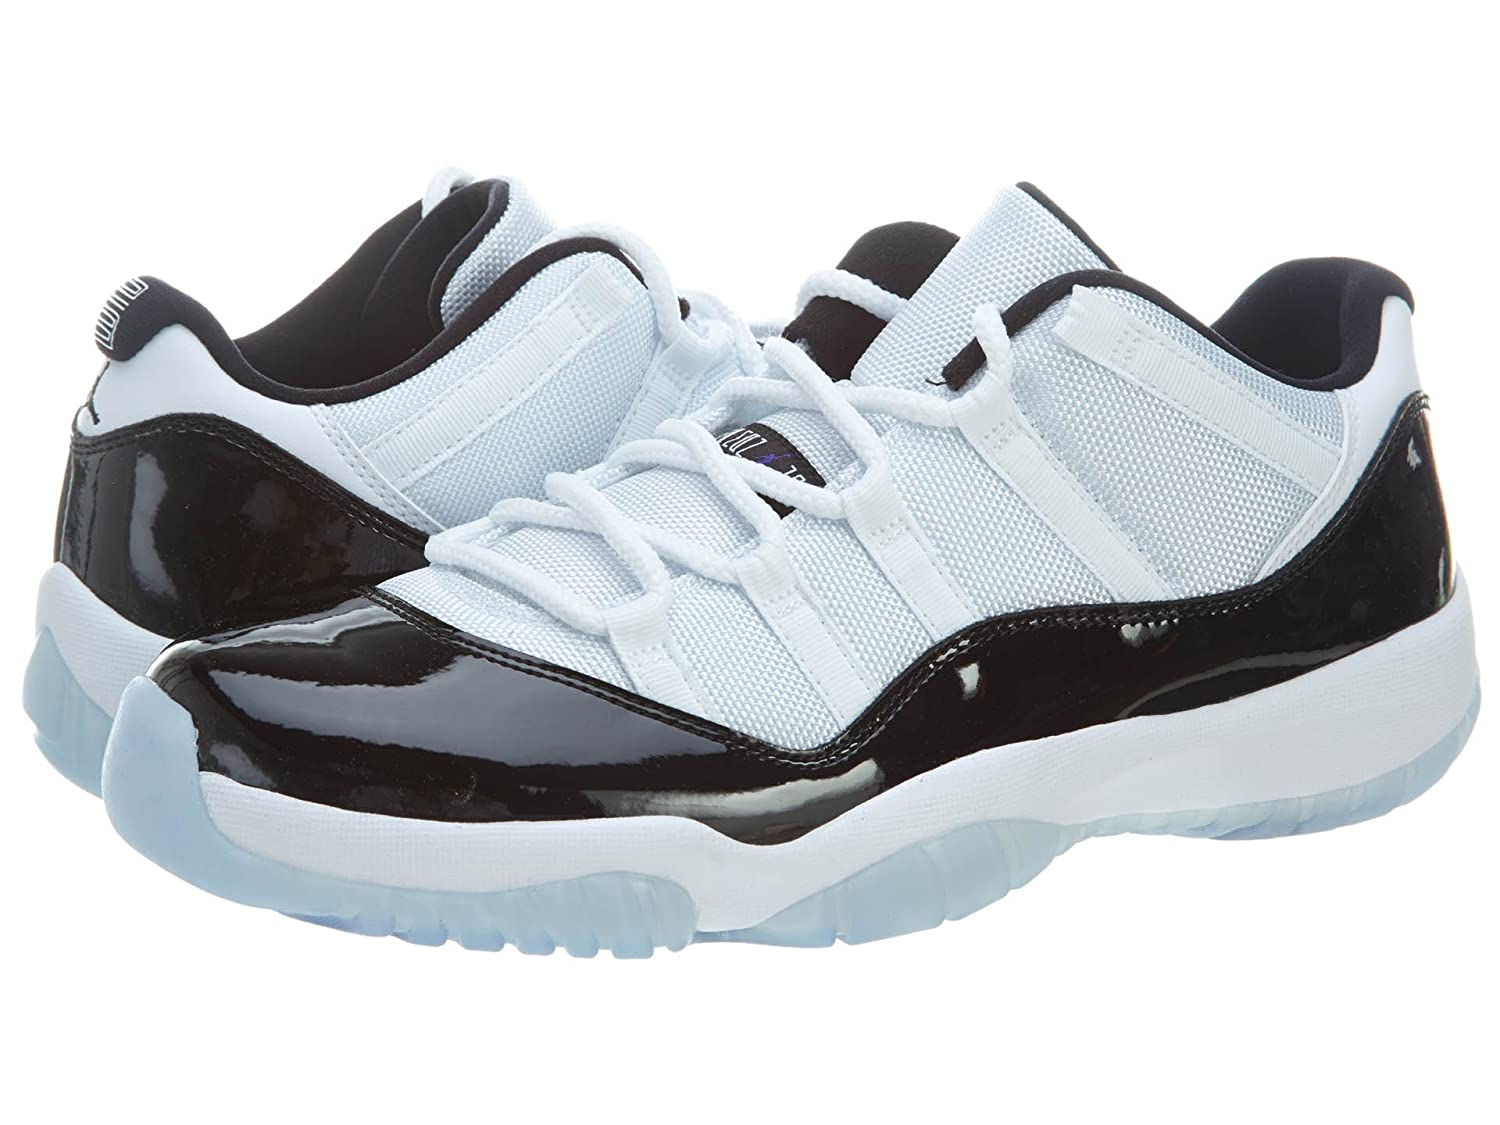 Amazon.com | Nike Mens Air Jordan 11 Retro Low "|1500|1125|?|273c5d0e38fff73762470ab3349de0ca|False|UNLIKELY|0.33200958371162415